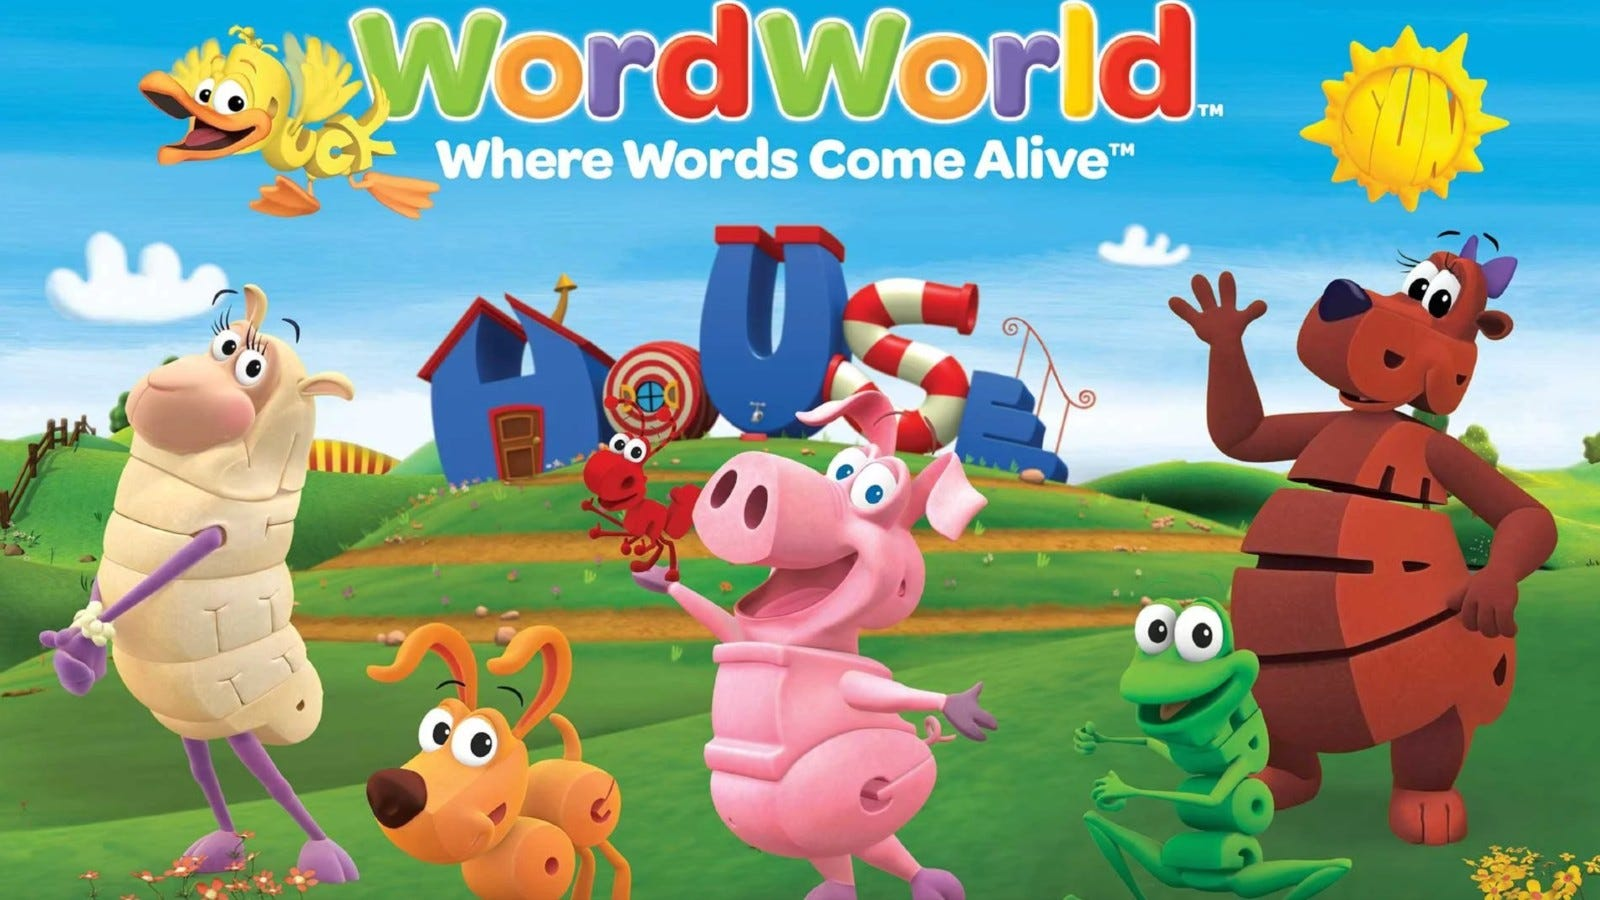 Promotional image for WordWorld, depicting the animal characters on the farm.